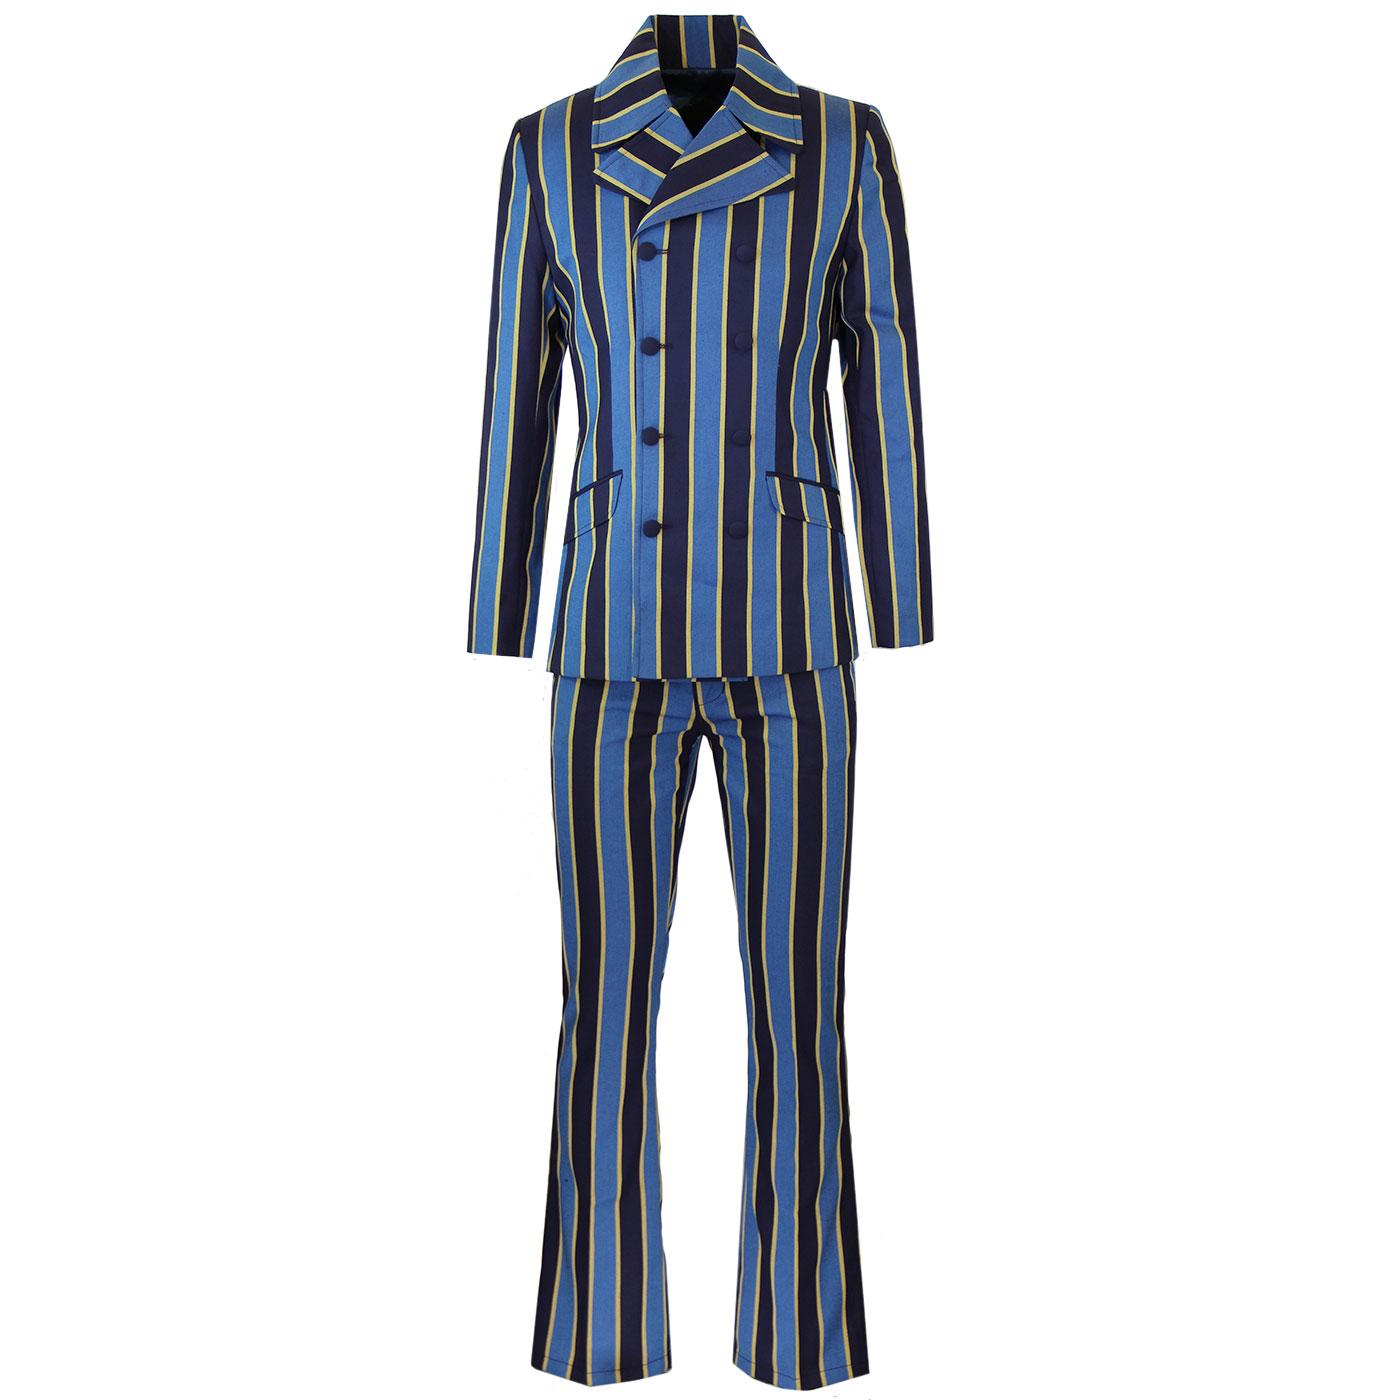 Backbeat MADCAP ENGLAND Mod DB Flared Suit in Blue